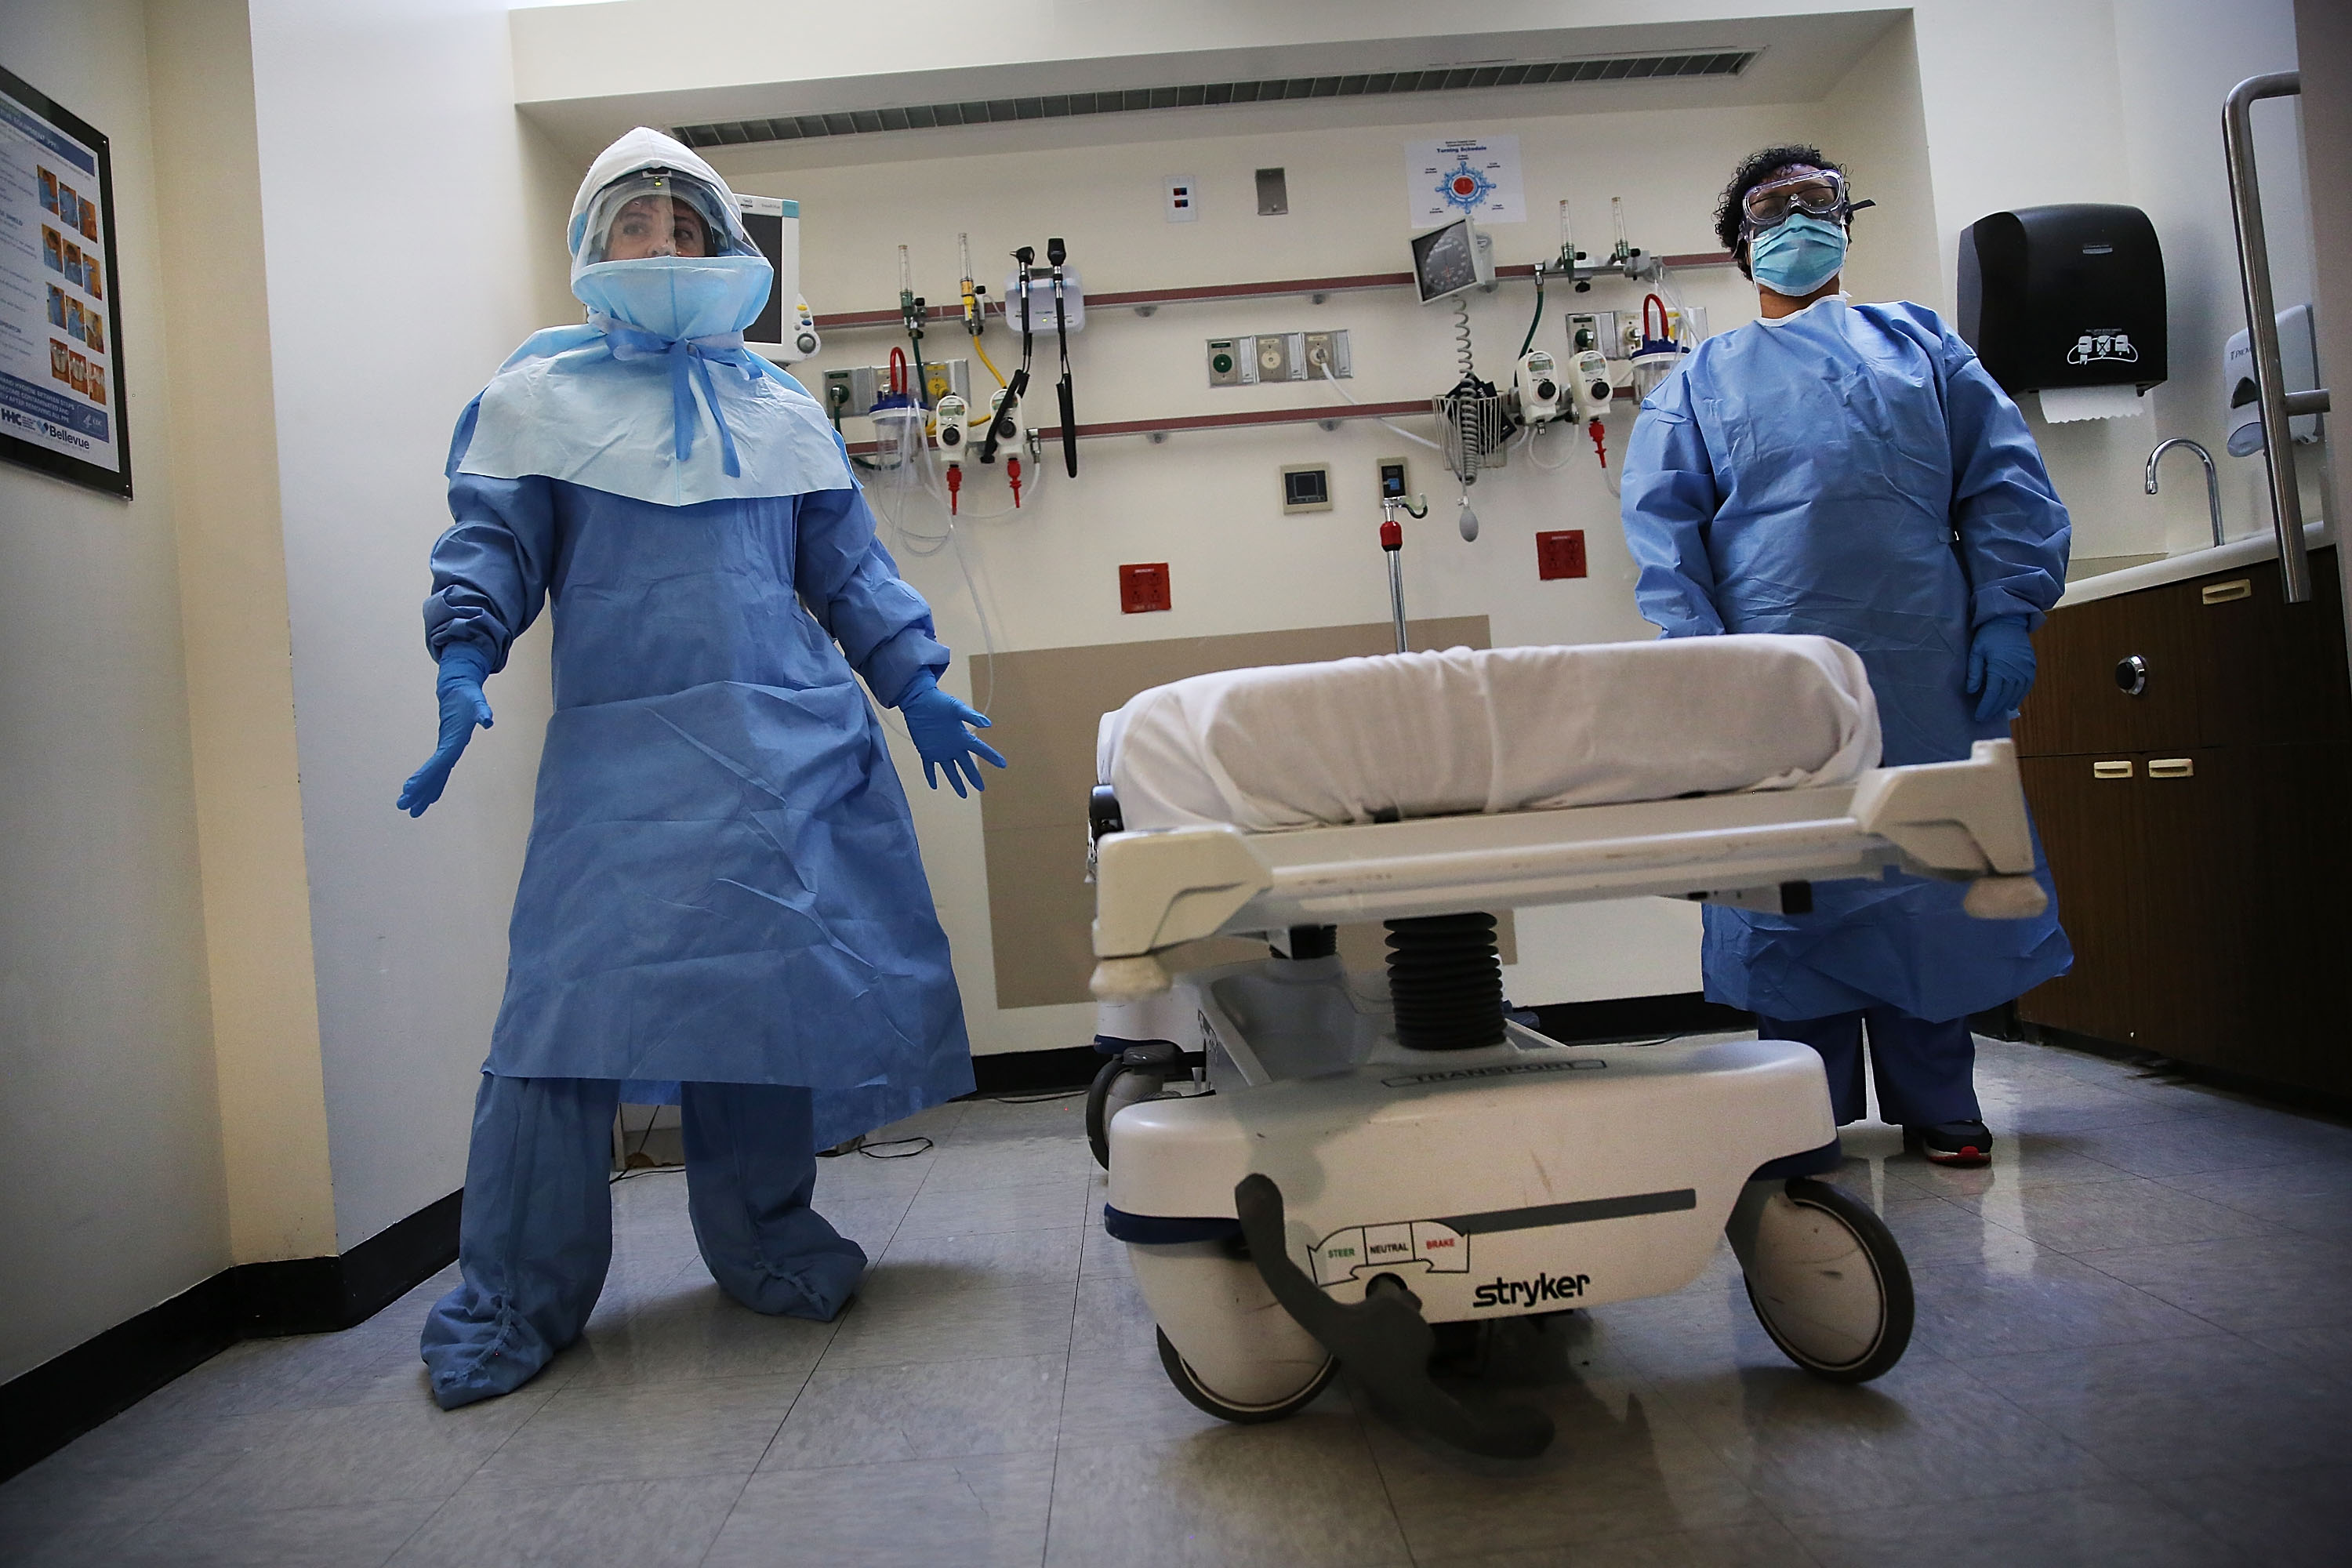 Members of Bellevue Hospital staff wear protective clothing as they demonstrate how they would receive a suspected Ebola patient on Oct. 8, 2014 in New York City.